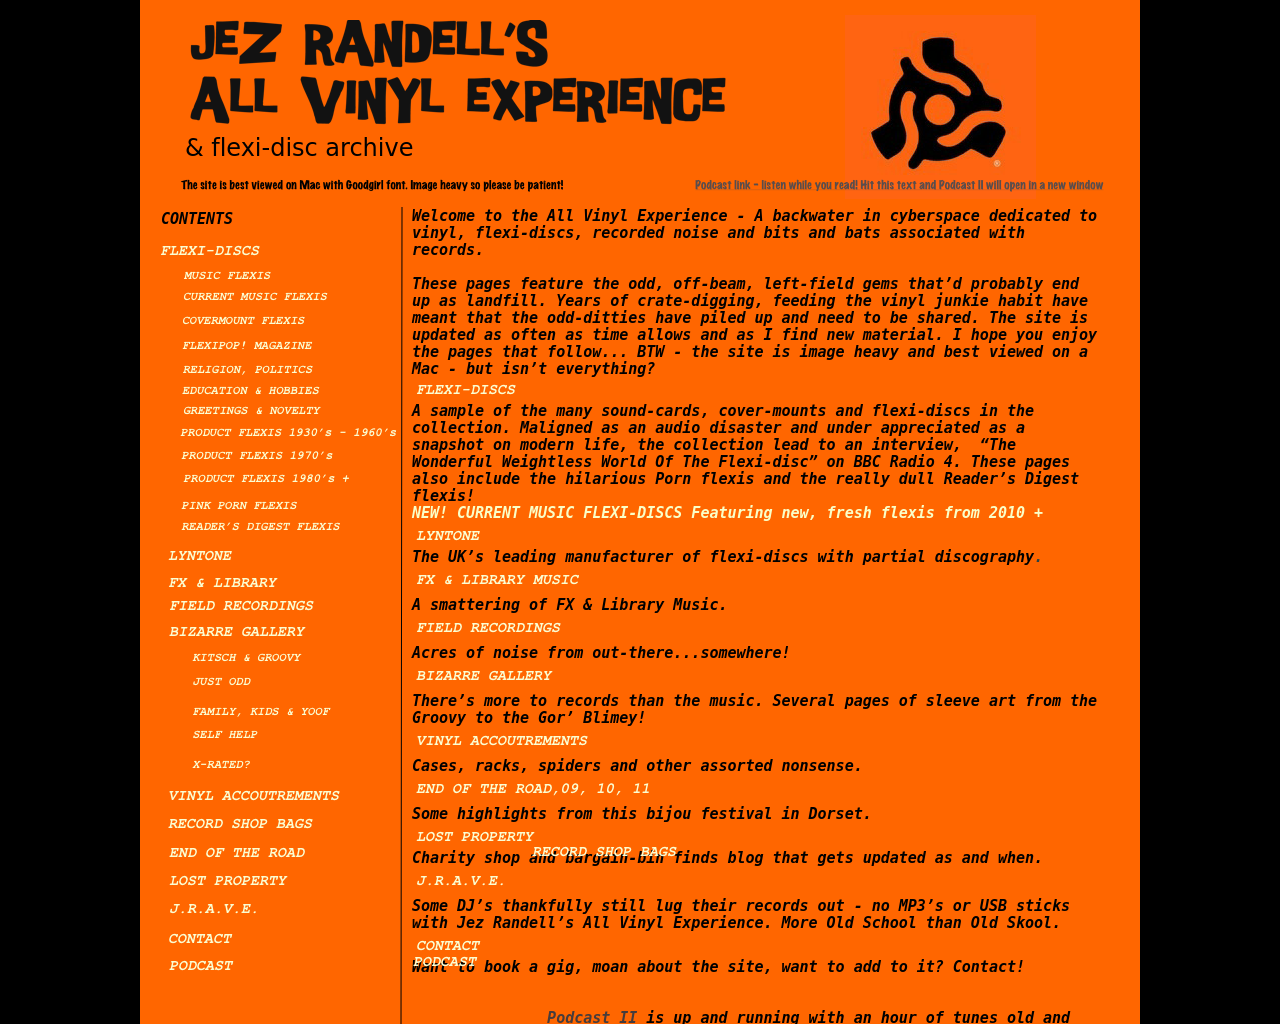 Jez-Randell's-All-Vinyl-Experience-Advertising-Reviews-Pricing